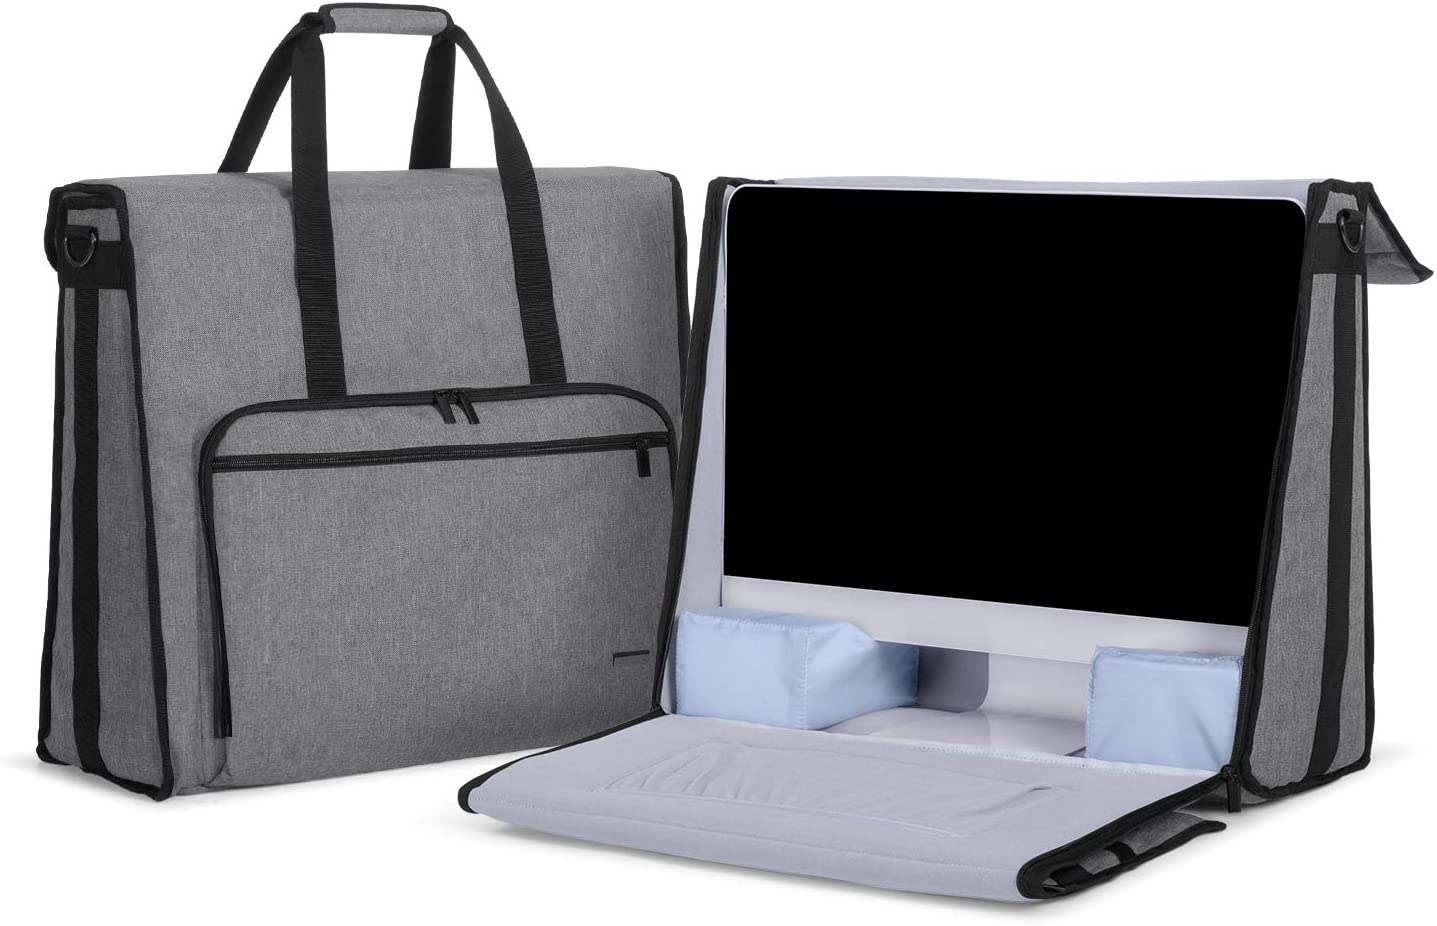 "Damero Carrying Tote Bag Compatible with Apple 21.5"" iMac Desktop Computer, Travel Storage Bag for iMac 21.5-inch and Other Accessories, Gray"